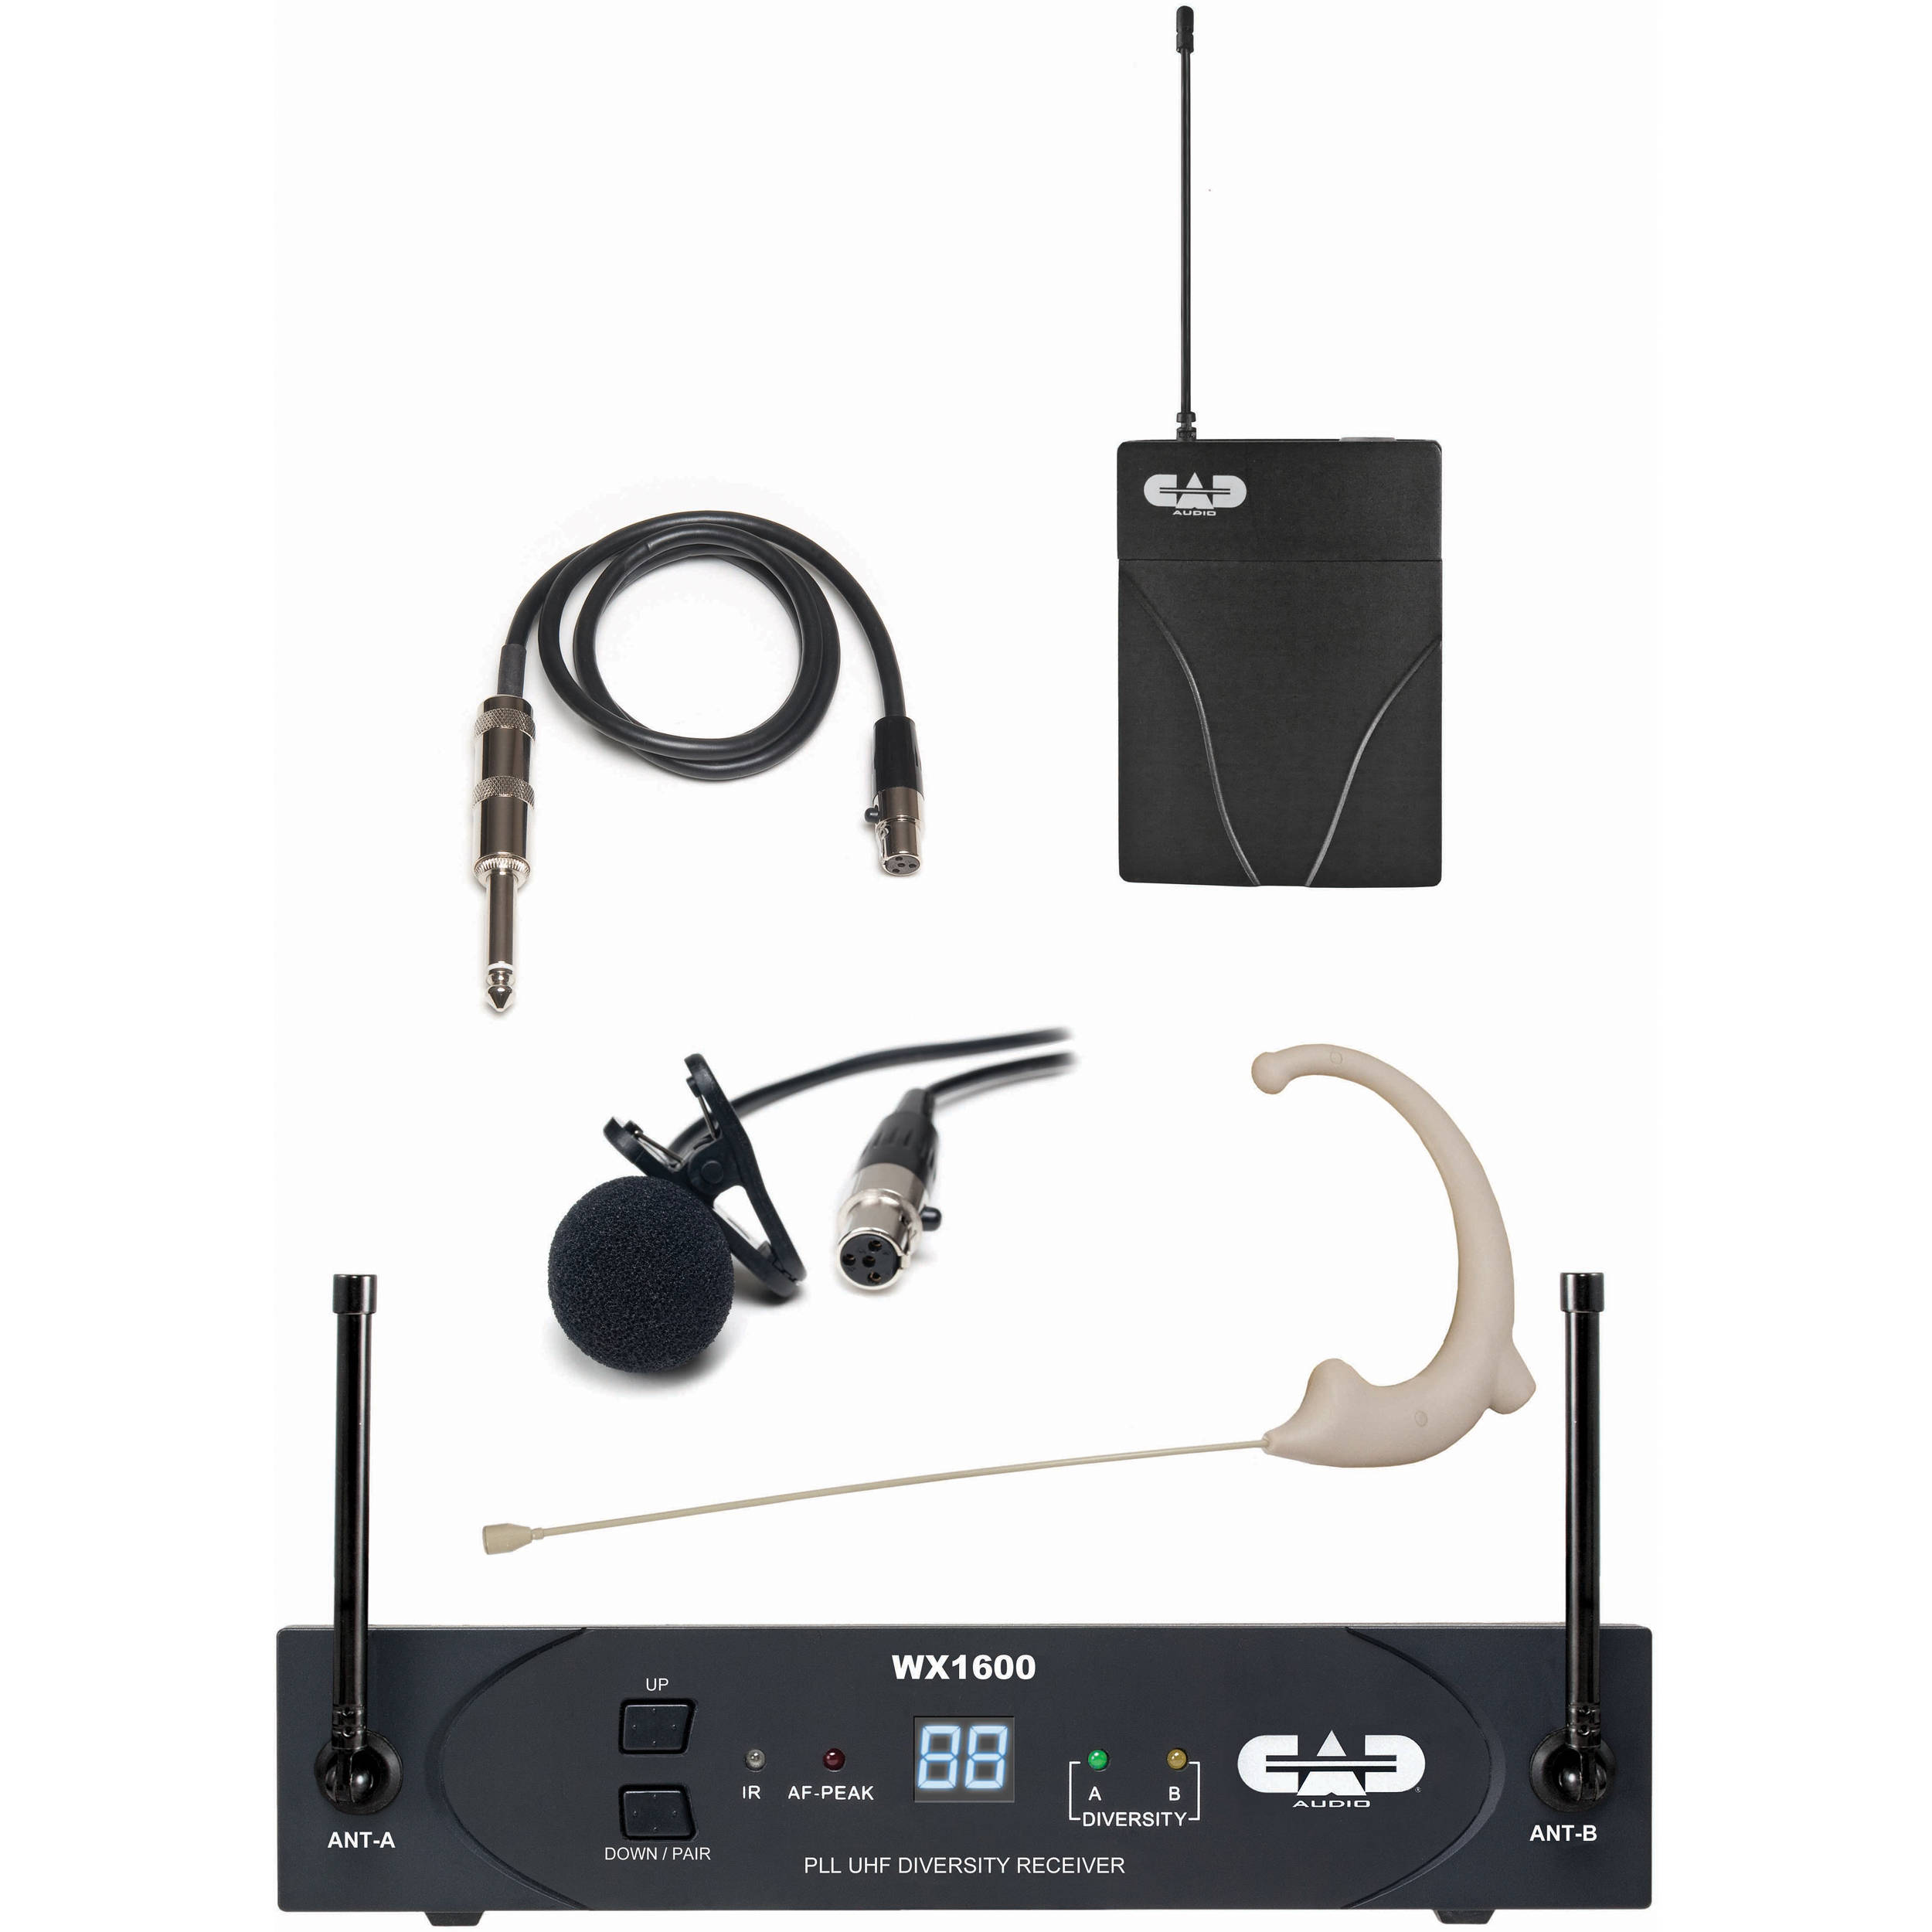 CAD WX1610 StagePass Wireless Bodypack System with Lavalier Earworn Mic and Guitar Cable